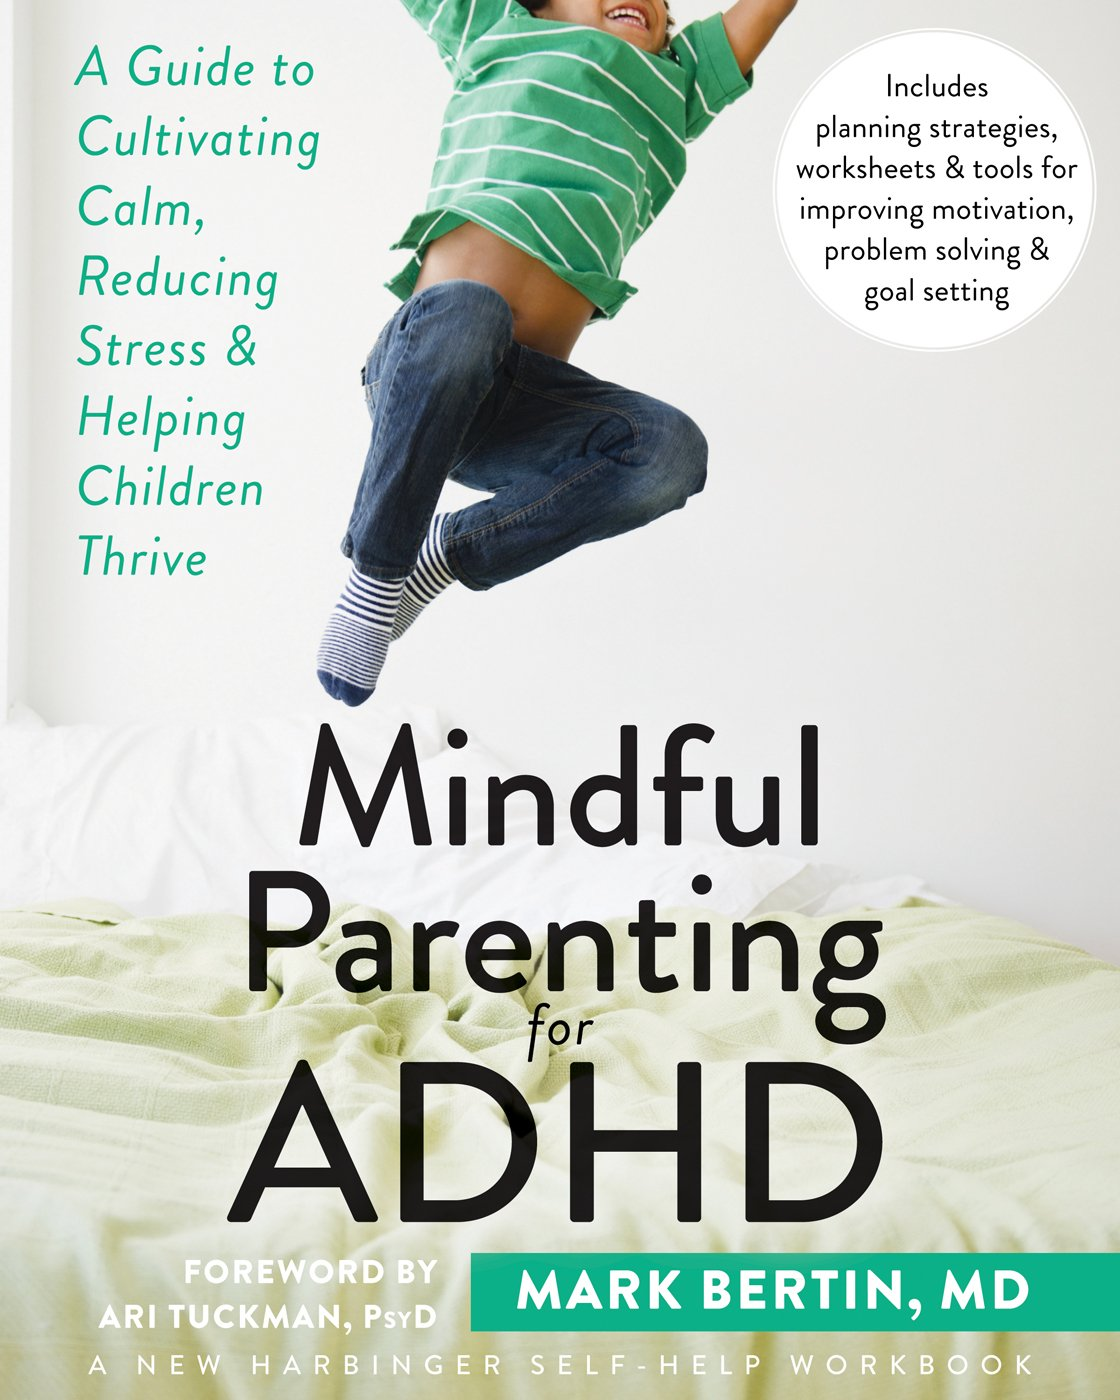 Mindful-Parenting-for-ADHD-by-Mark-Bertin